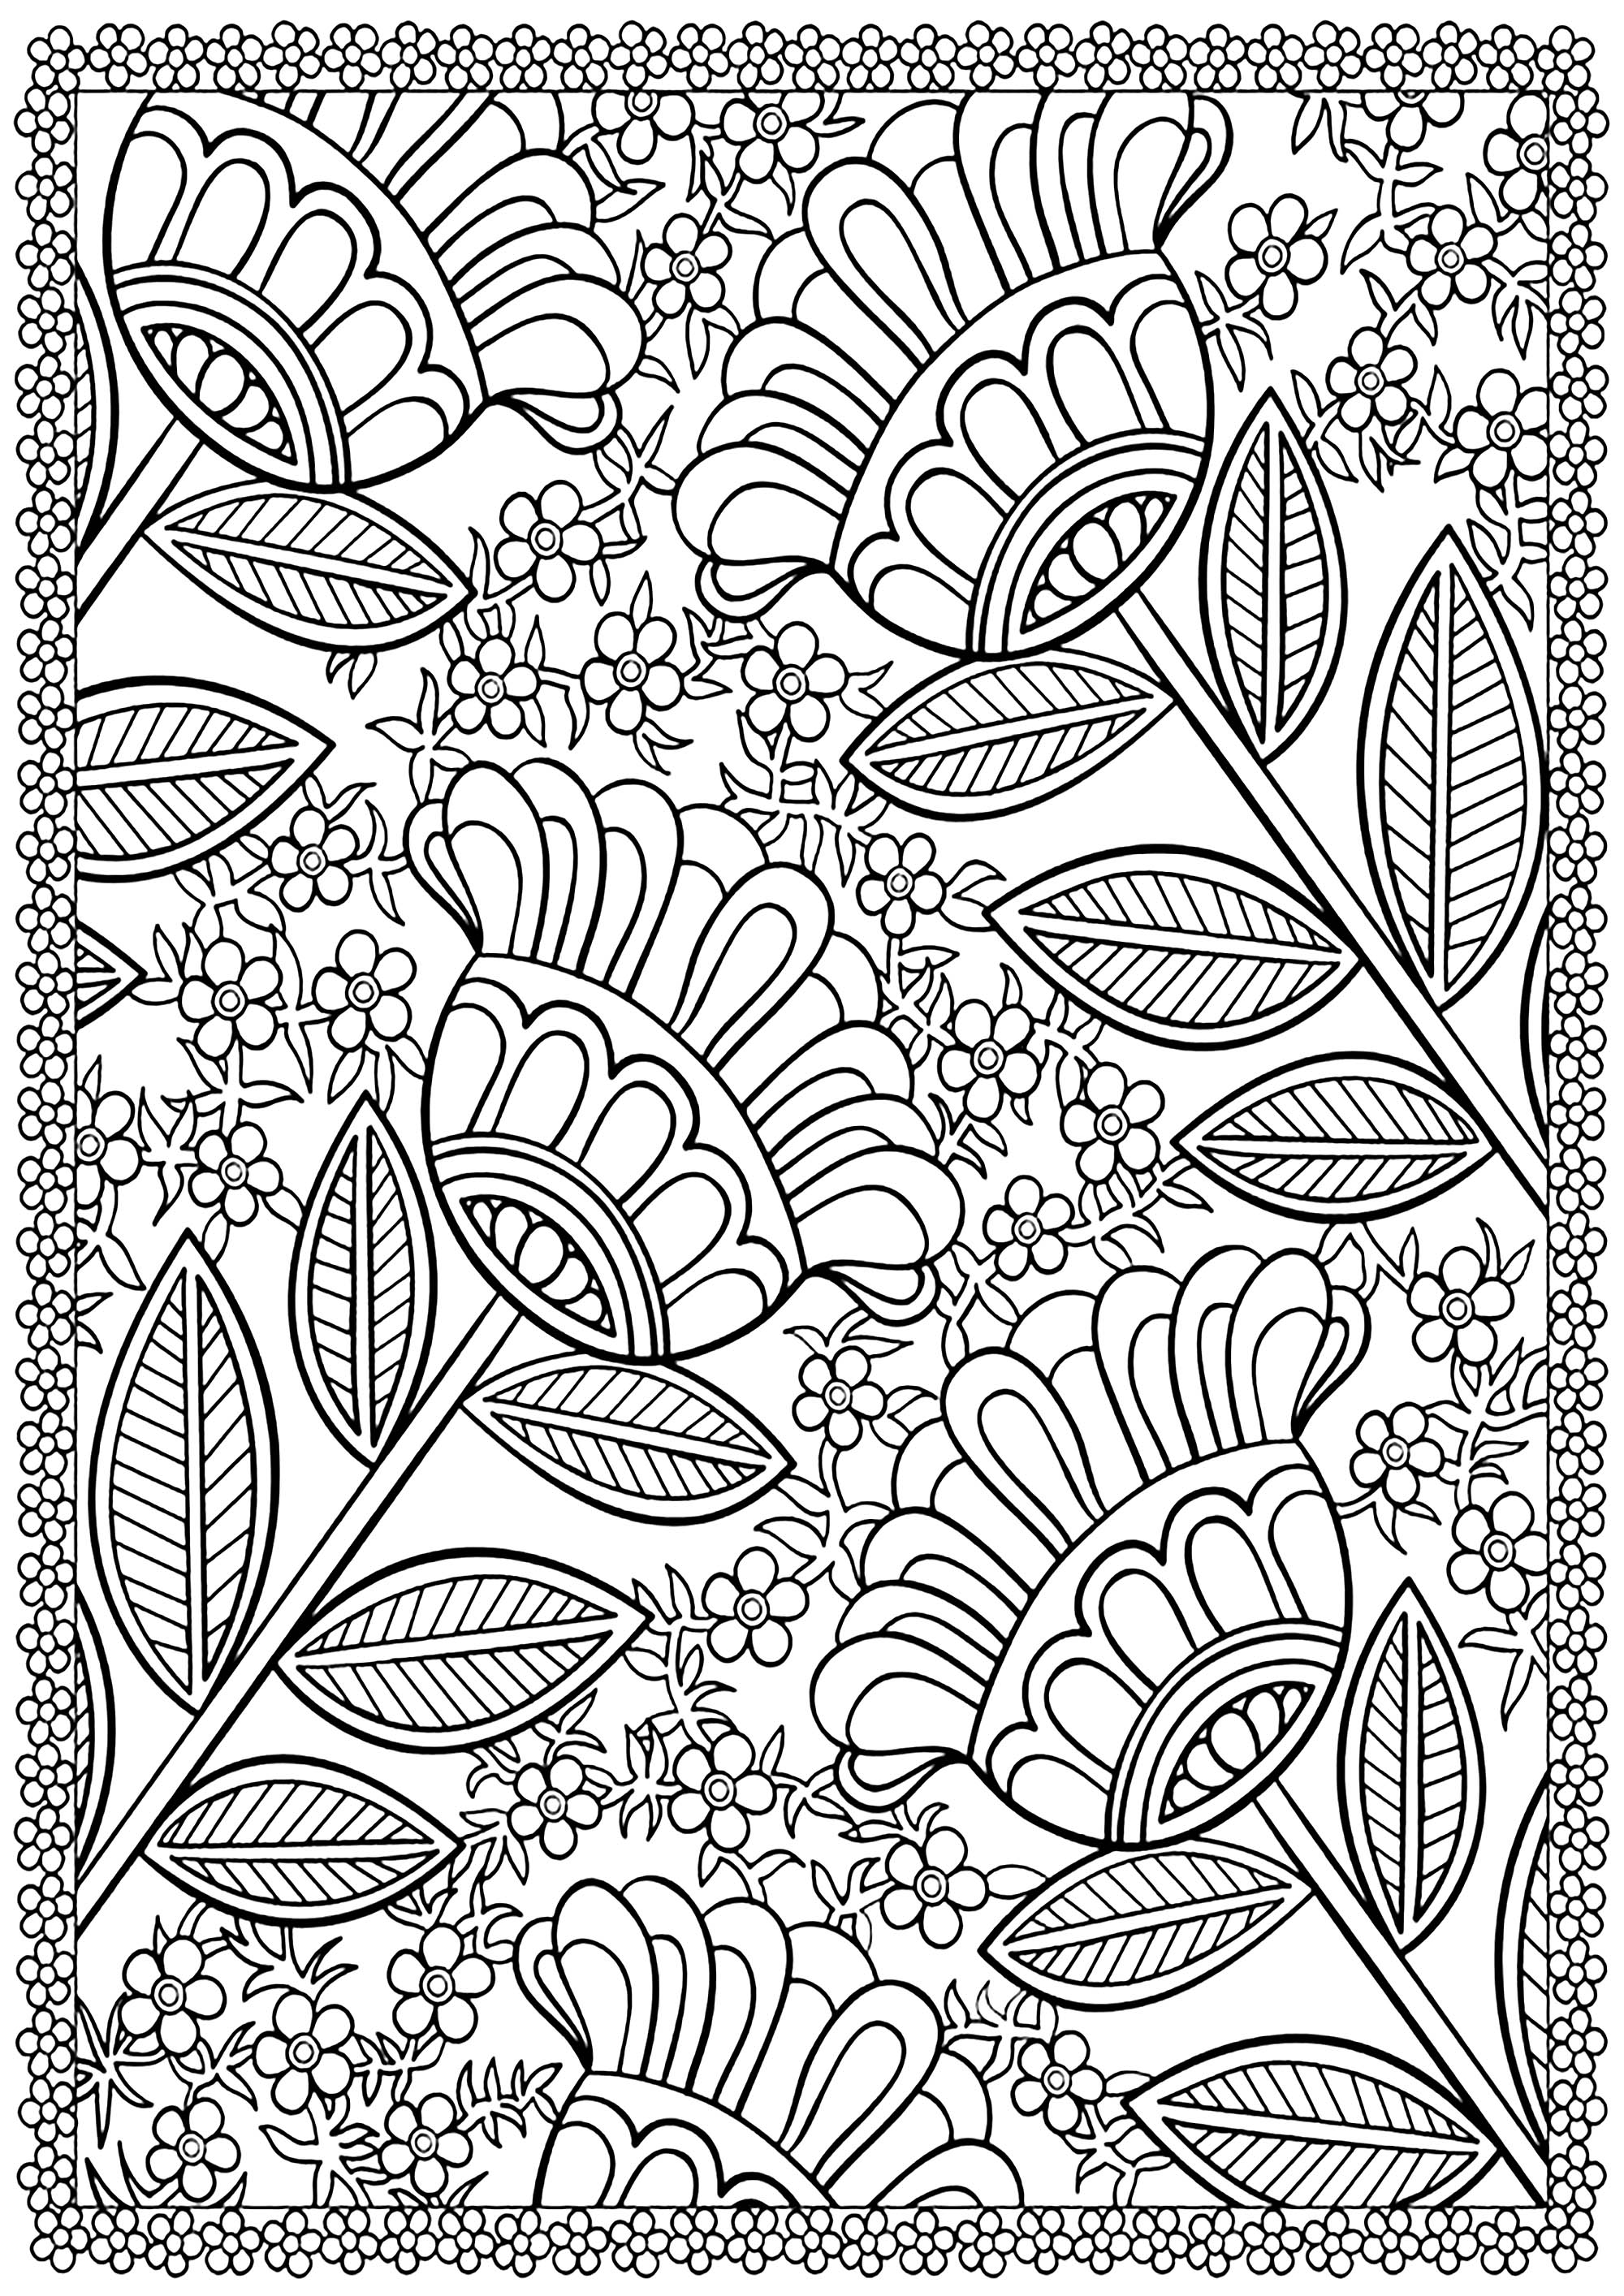 Four big flowers - Flowers Adult Coloring Pages